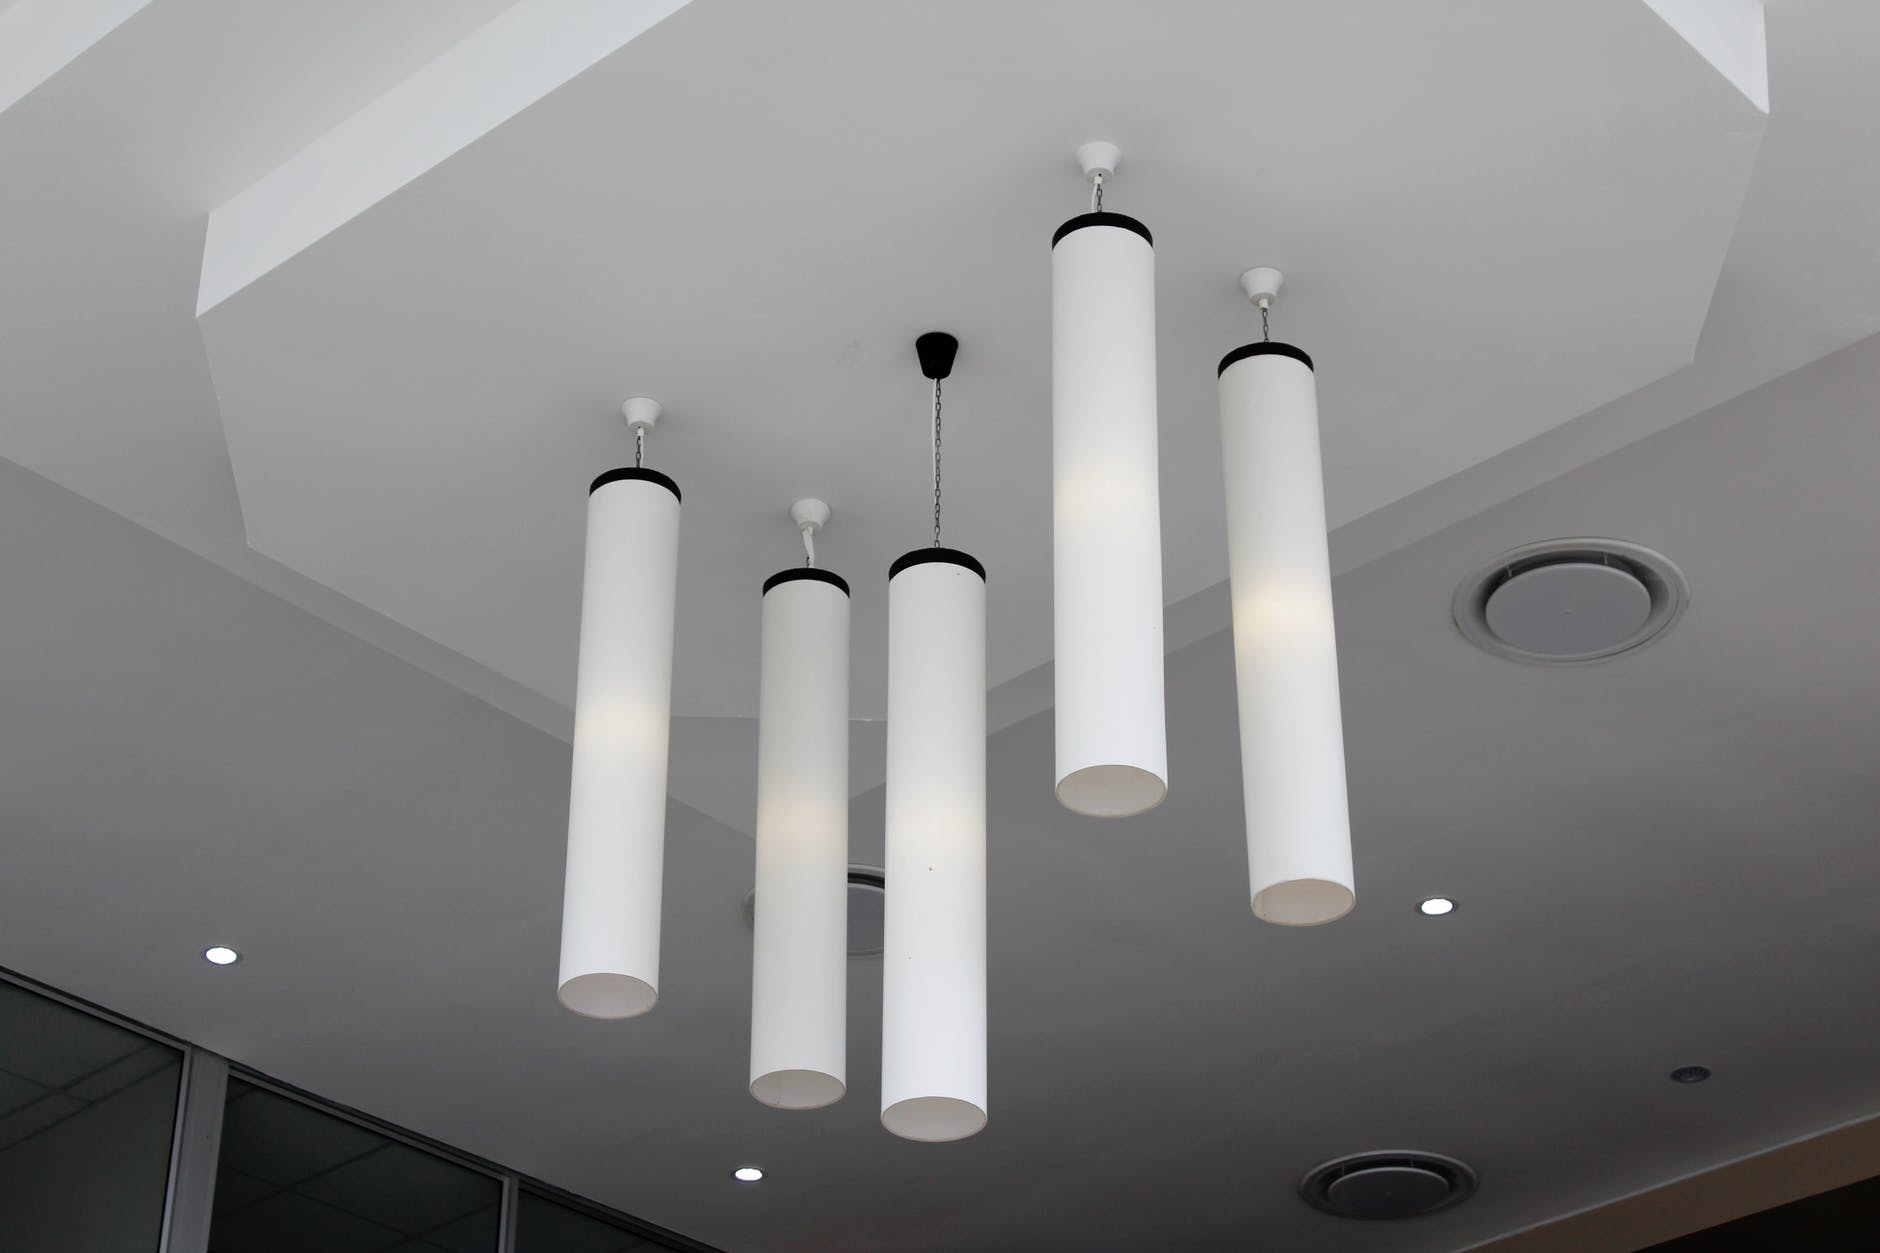 Ceiling Decoration Ideas in Low Budget